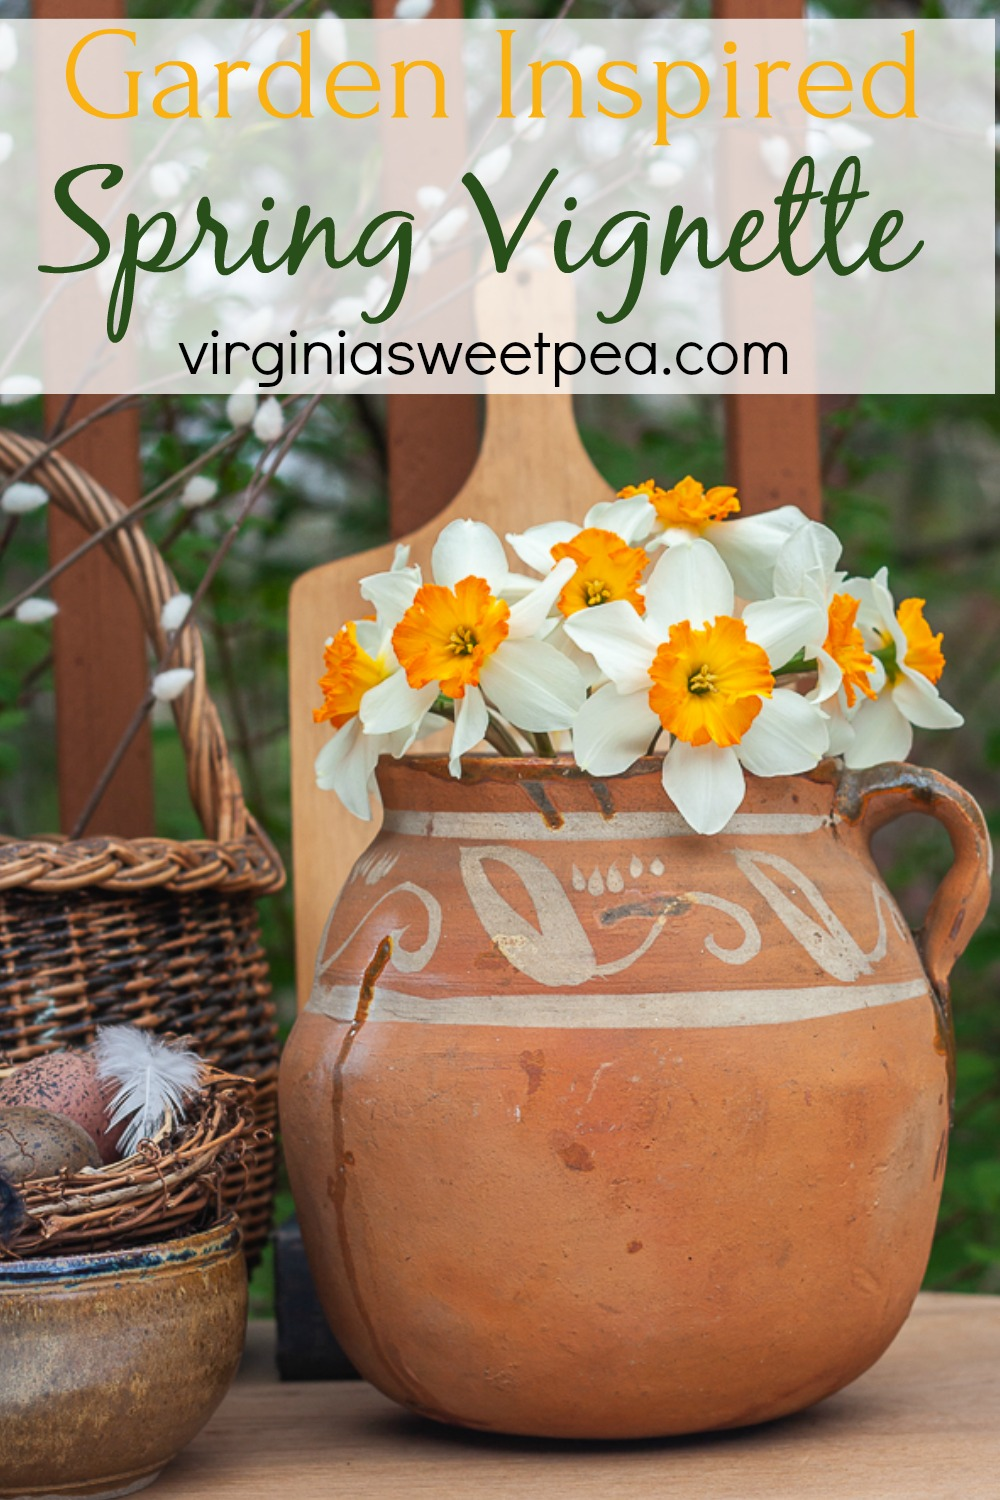 Spring vignette with an antique southerwestern pottery jug filled with daffodils, and antique basket, a pottery bowl holding a nest, and a wooden cutting board.